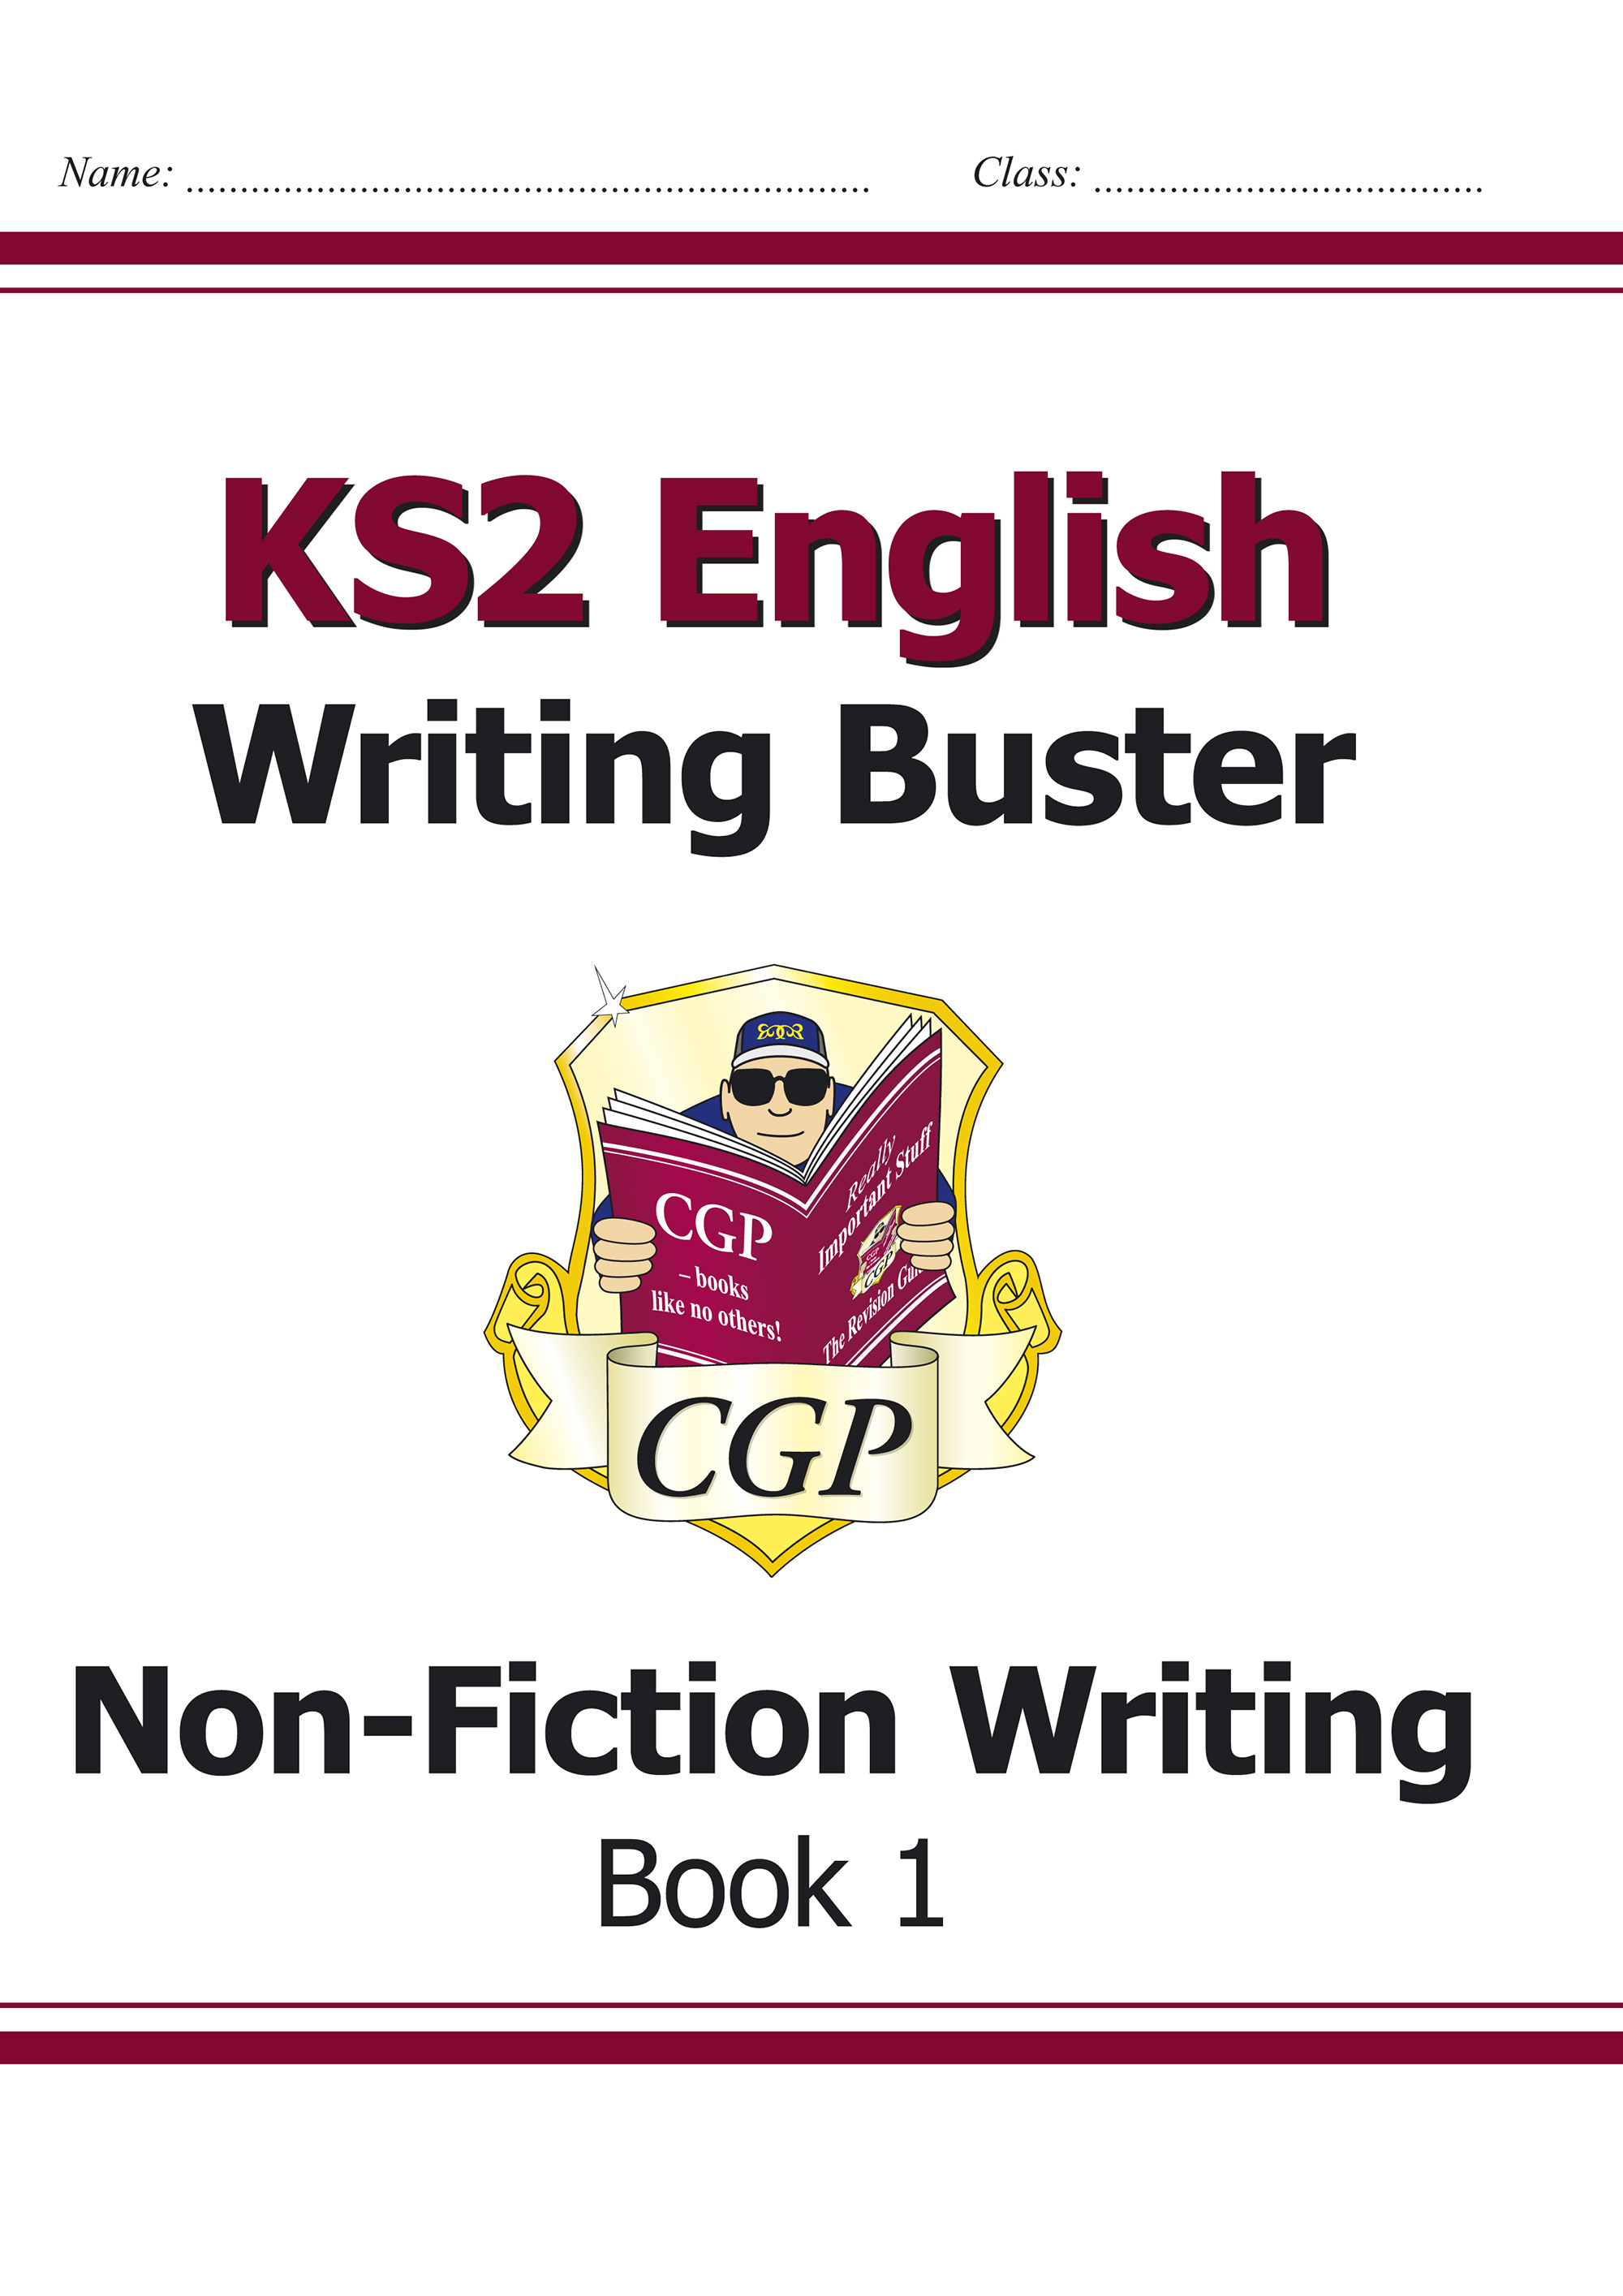 E6N123 - KS2 English Writing Buster - Non-Fiction Writing - Book 1